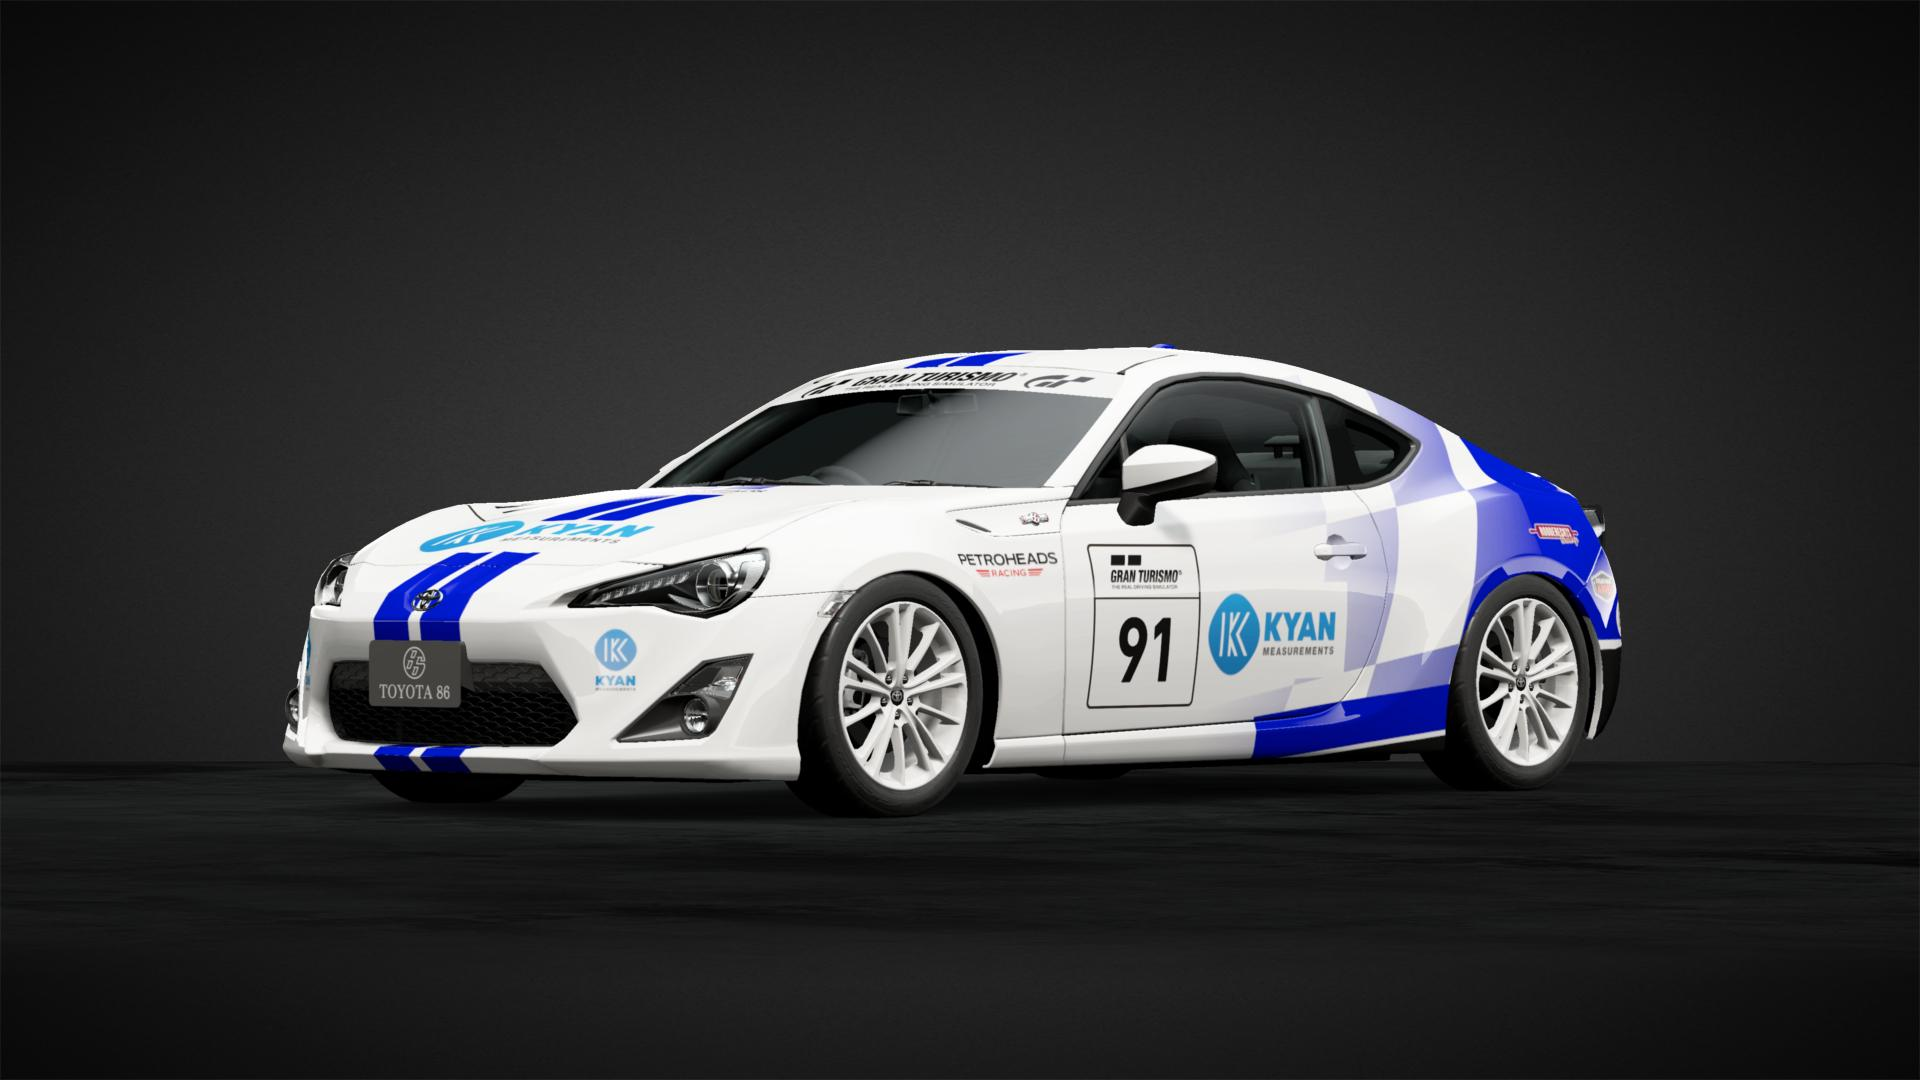 91 Toyota 86 Campaign Car Livery By Super Miki 2 Community